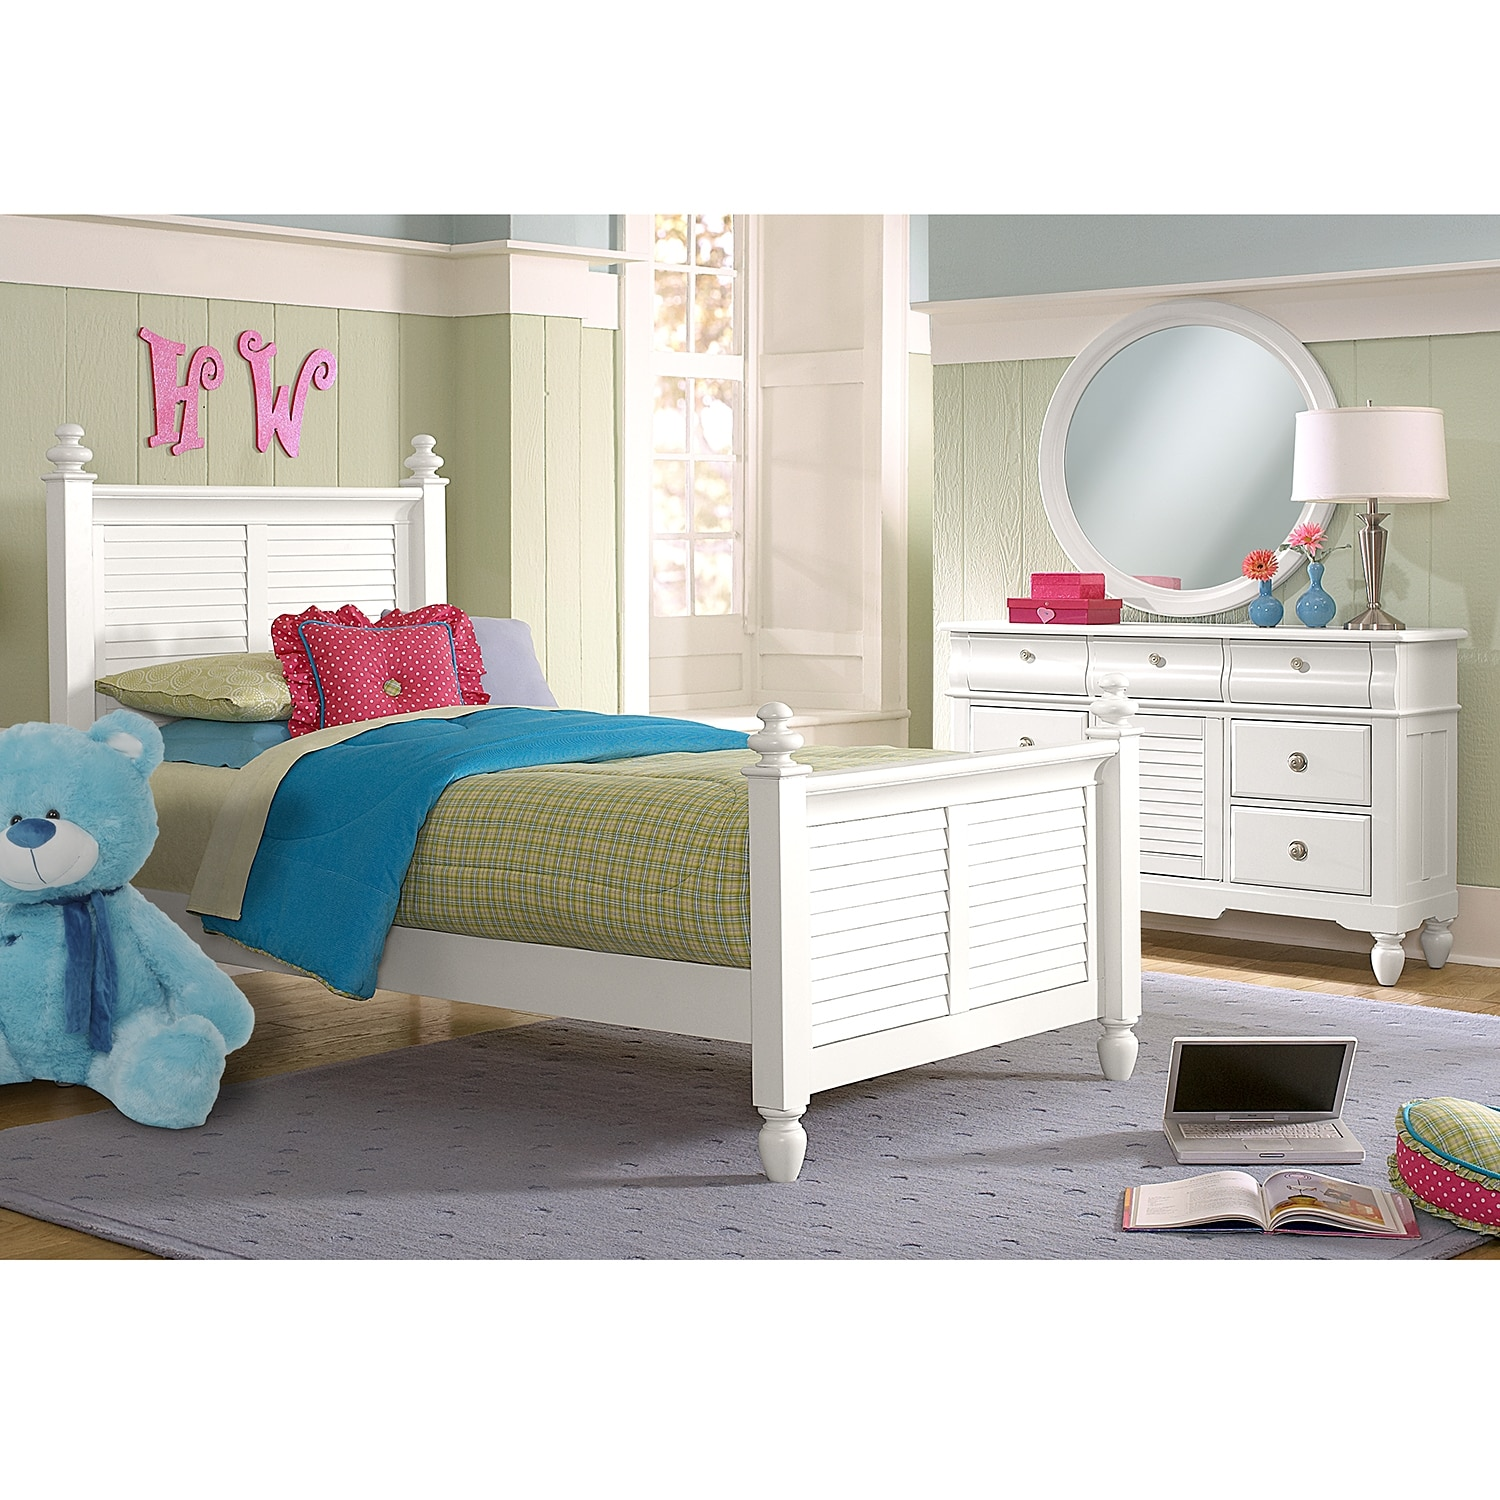 Seaside 5-Piece Full Bedroom Set - White | Value City Furniture and ...